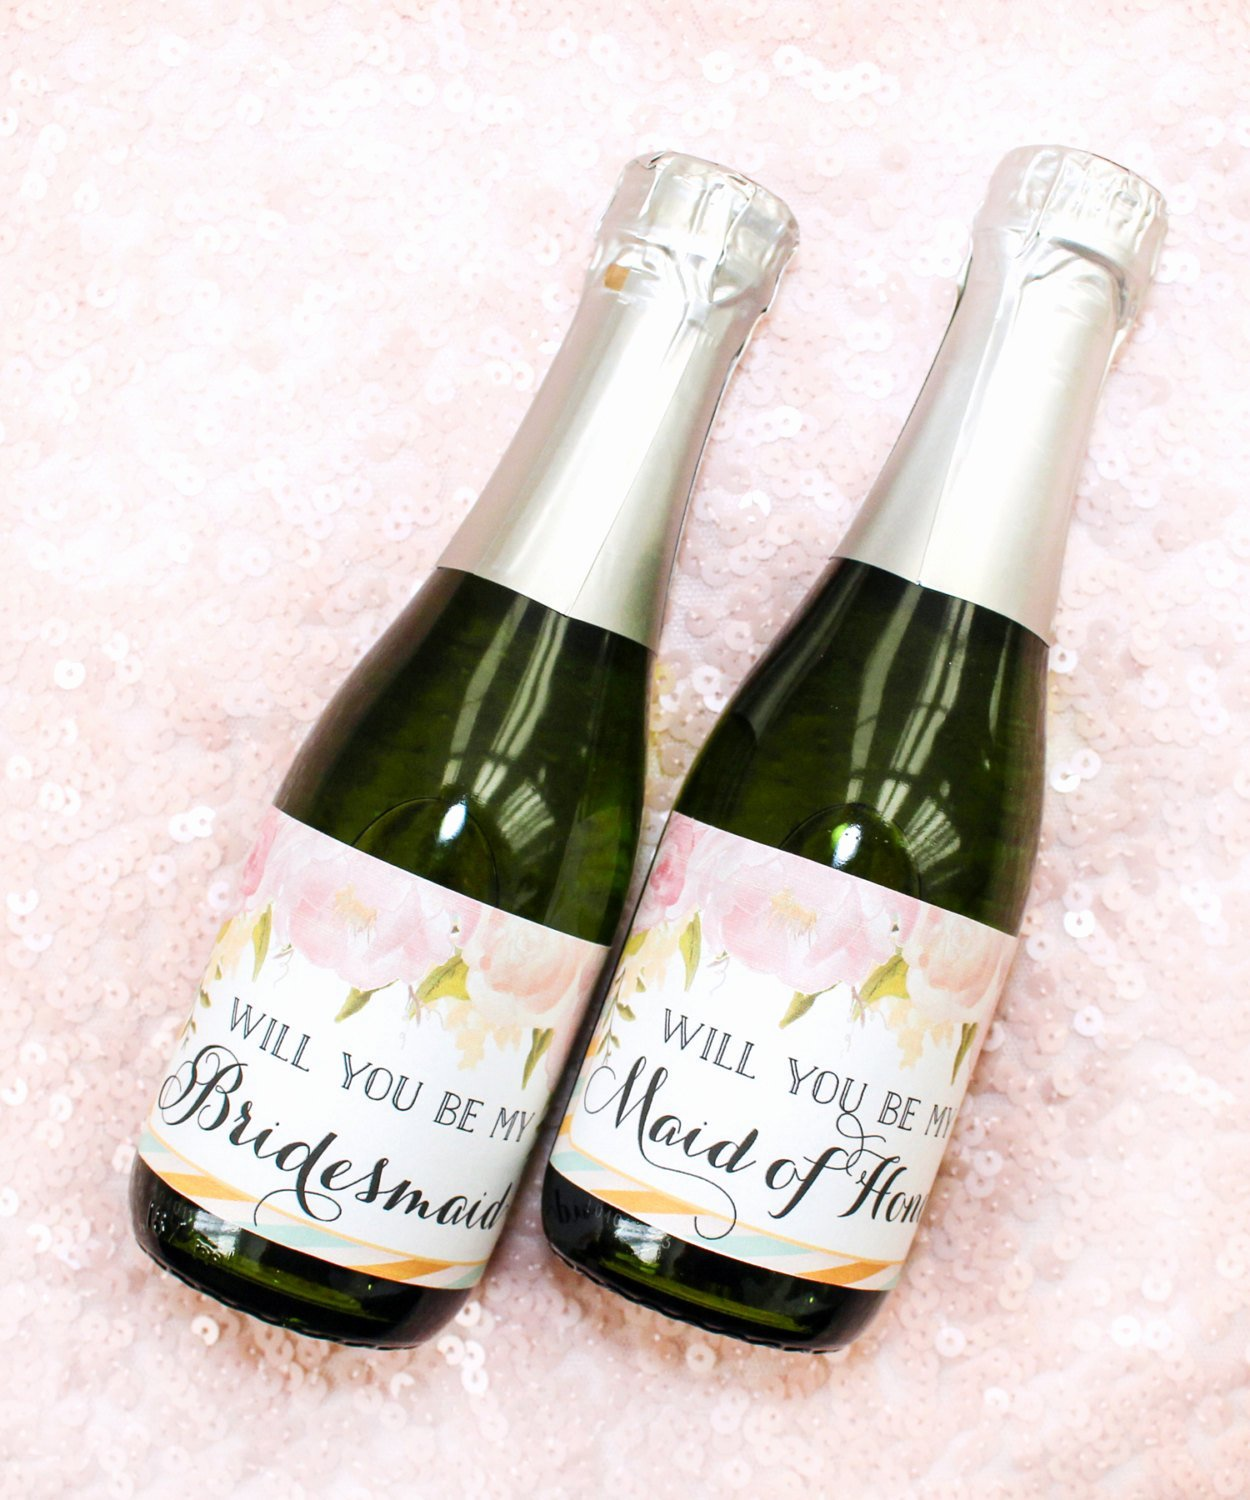 Will You Be My Bridesmaid Mini Champagne Bottle Labels Diy